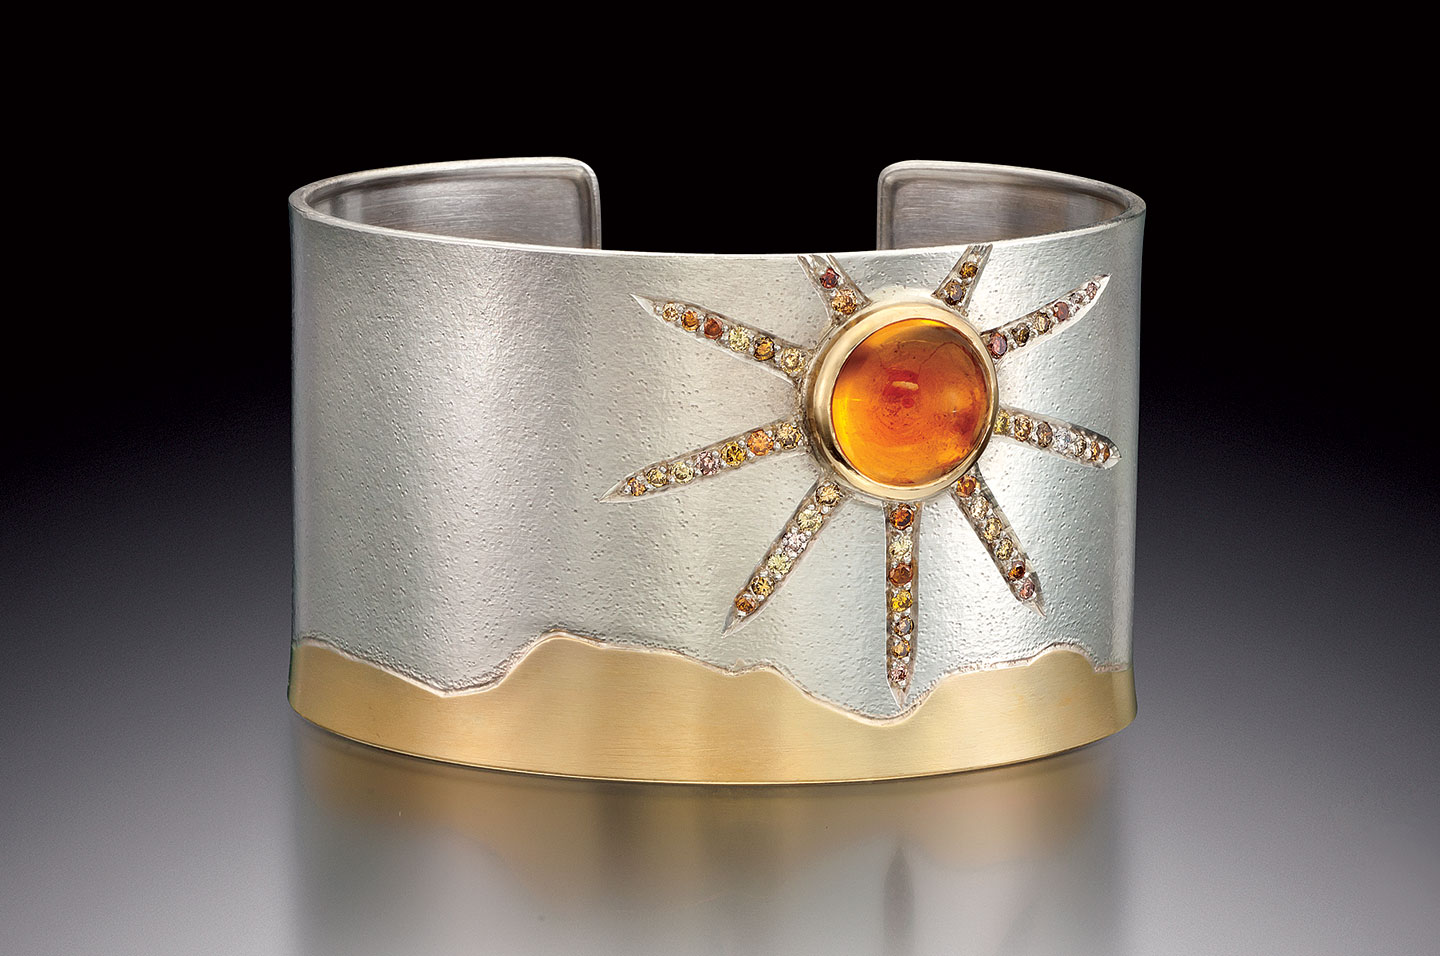 "DAY LANDSCAPE CUFF of sterling silver, eighteen karat yellow gold, citrine, natural colored diamonds, 6.4 x 3.8 x 4.4 centimeters, 2013. ""This is one of my favorite cuff designs which I designed and made when inspired by all things day and night."""